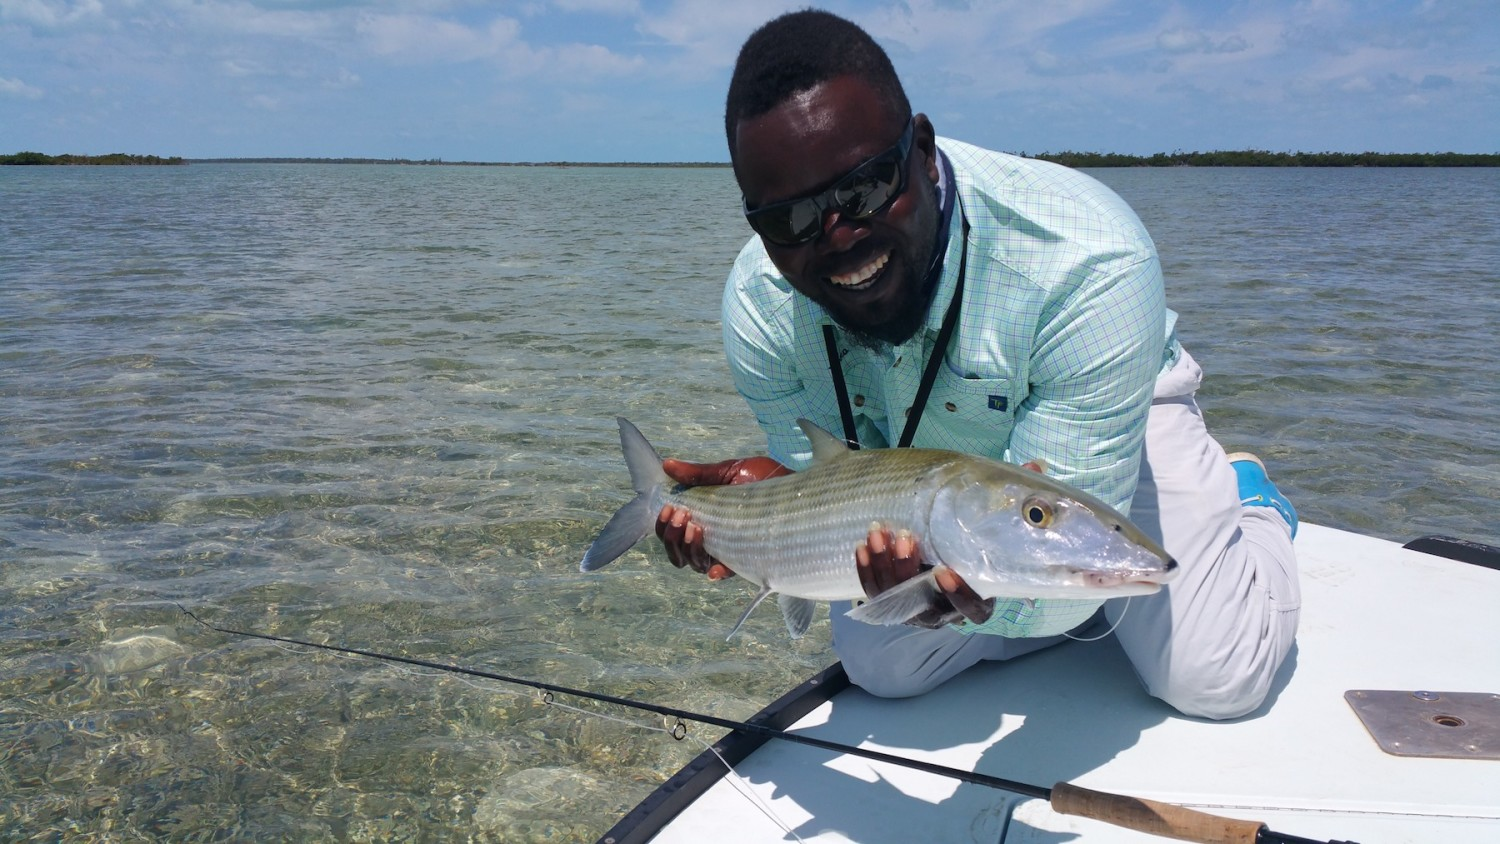 Brower Moffitt - T&T Pro guide Meko Glinton with a nice Bahamian bone and the Solar 908